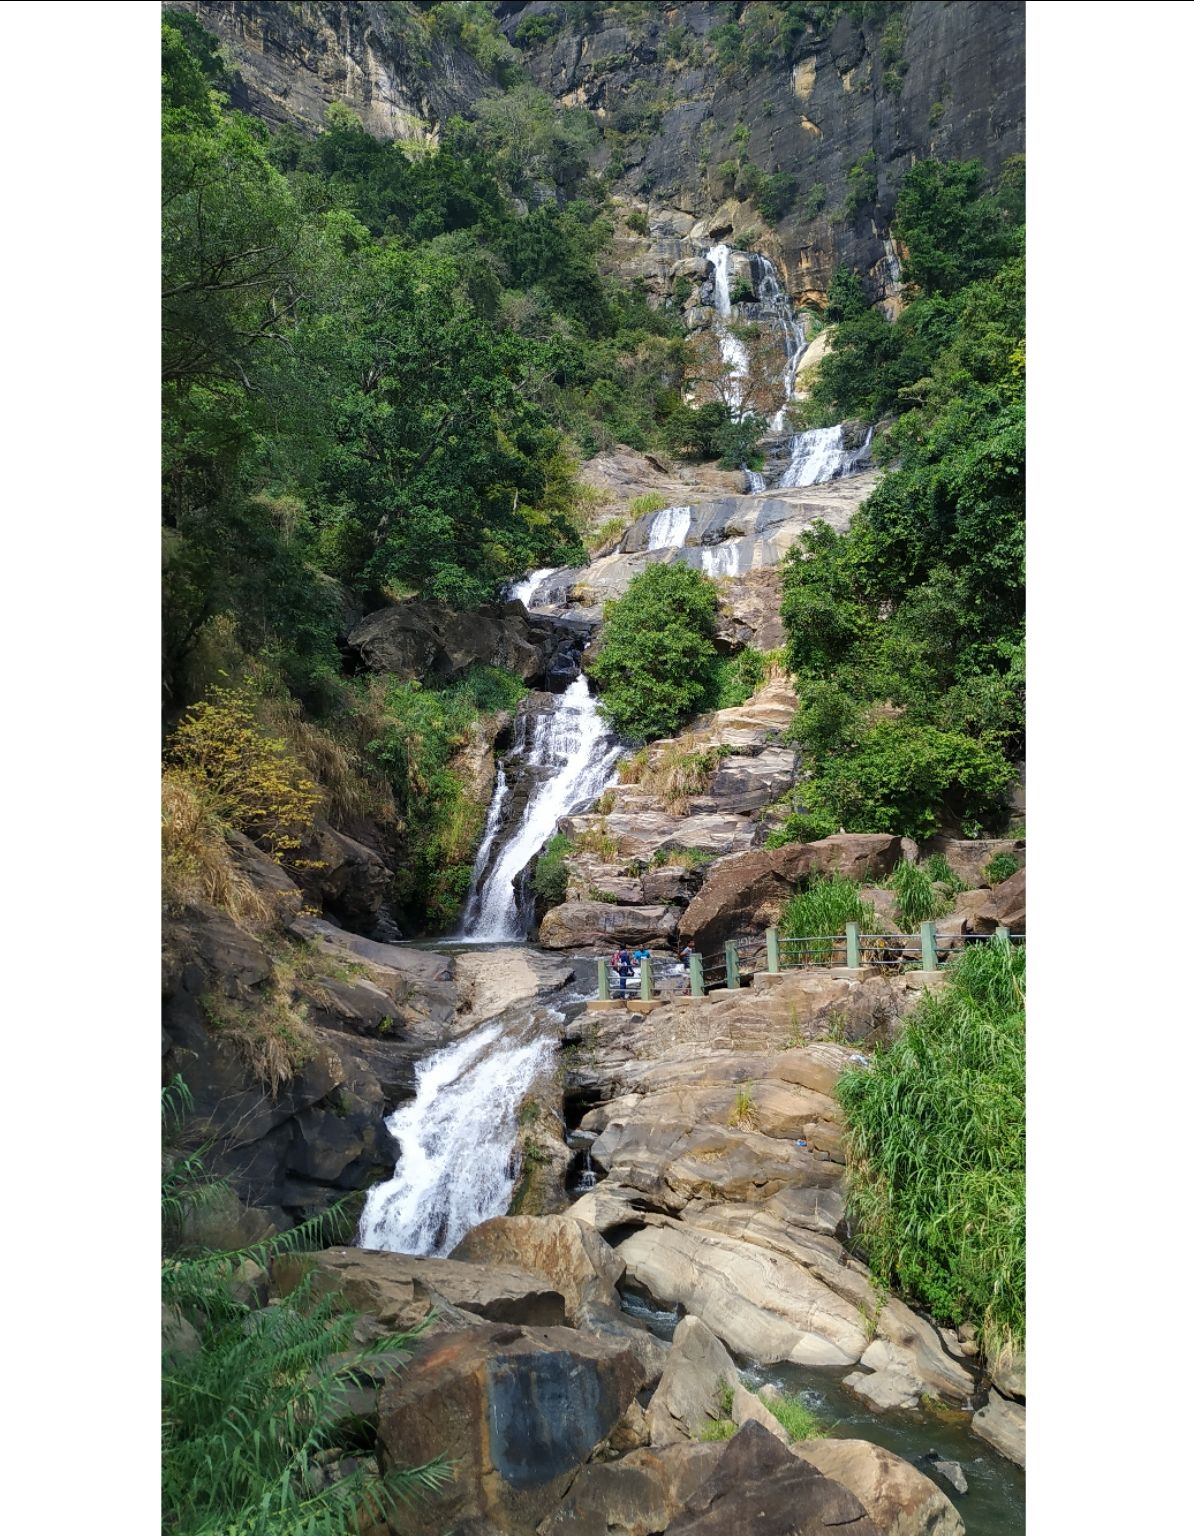 Photo of Ravana Falls. By Vagabond Doctor